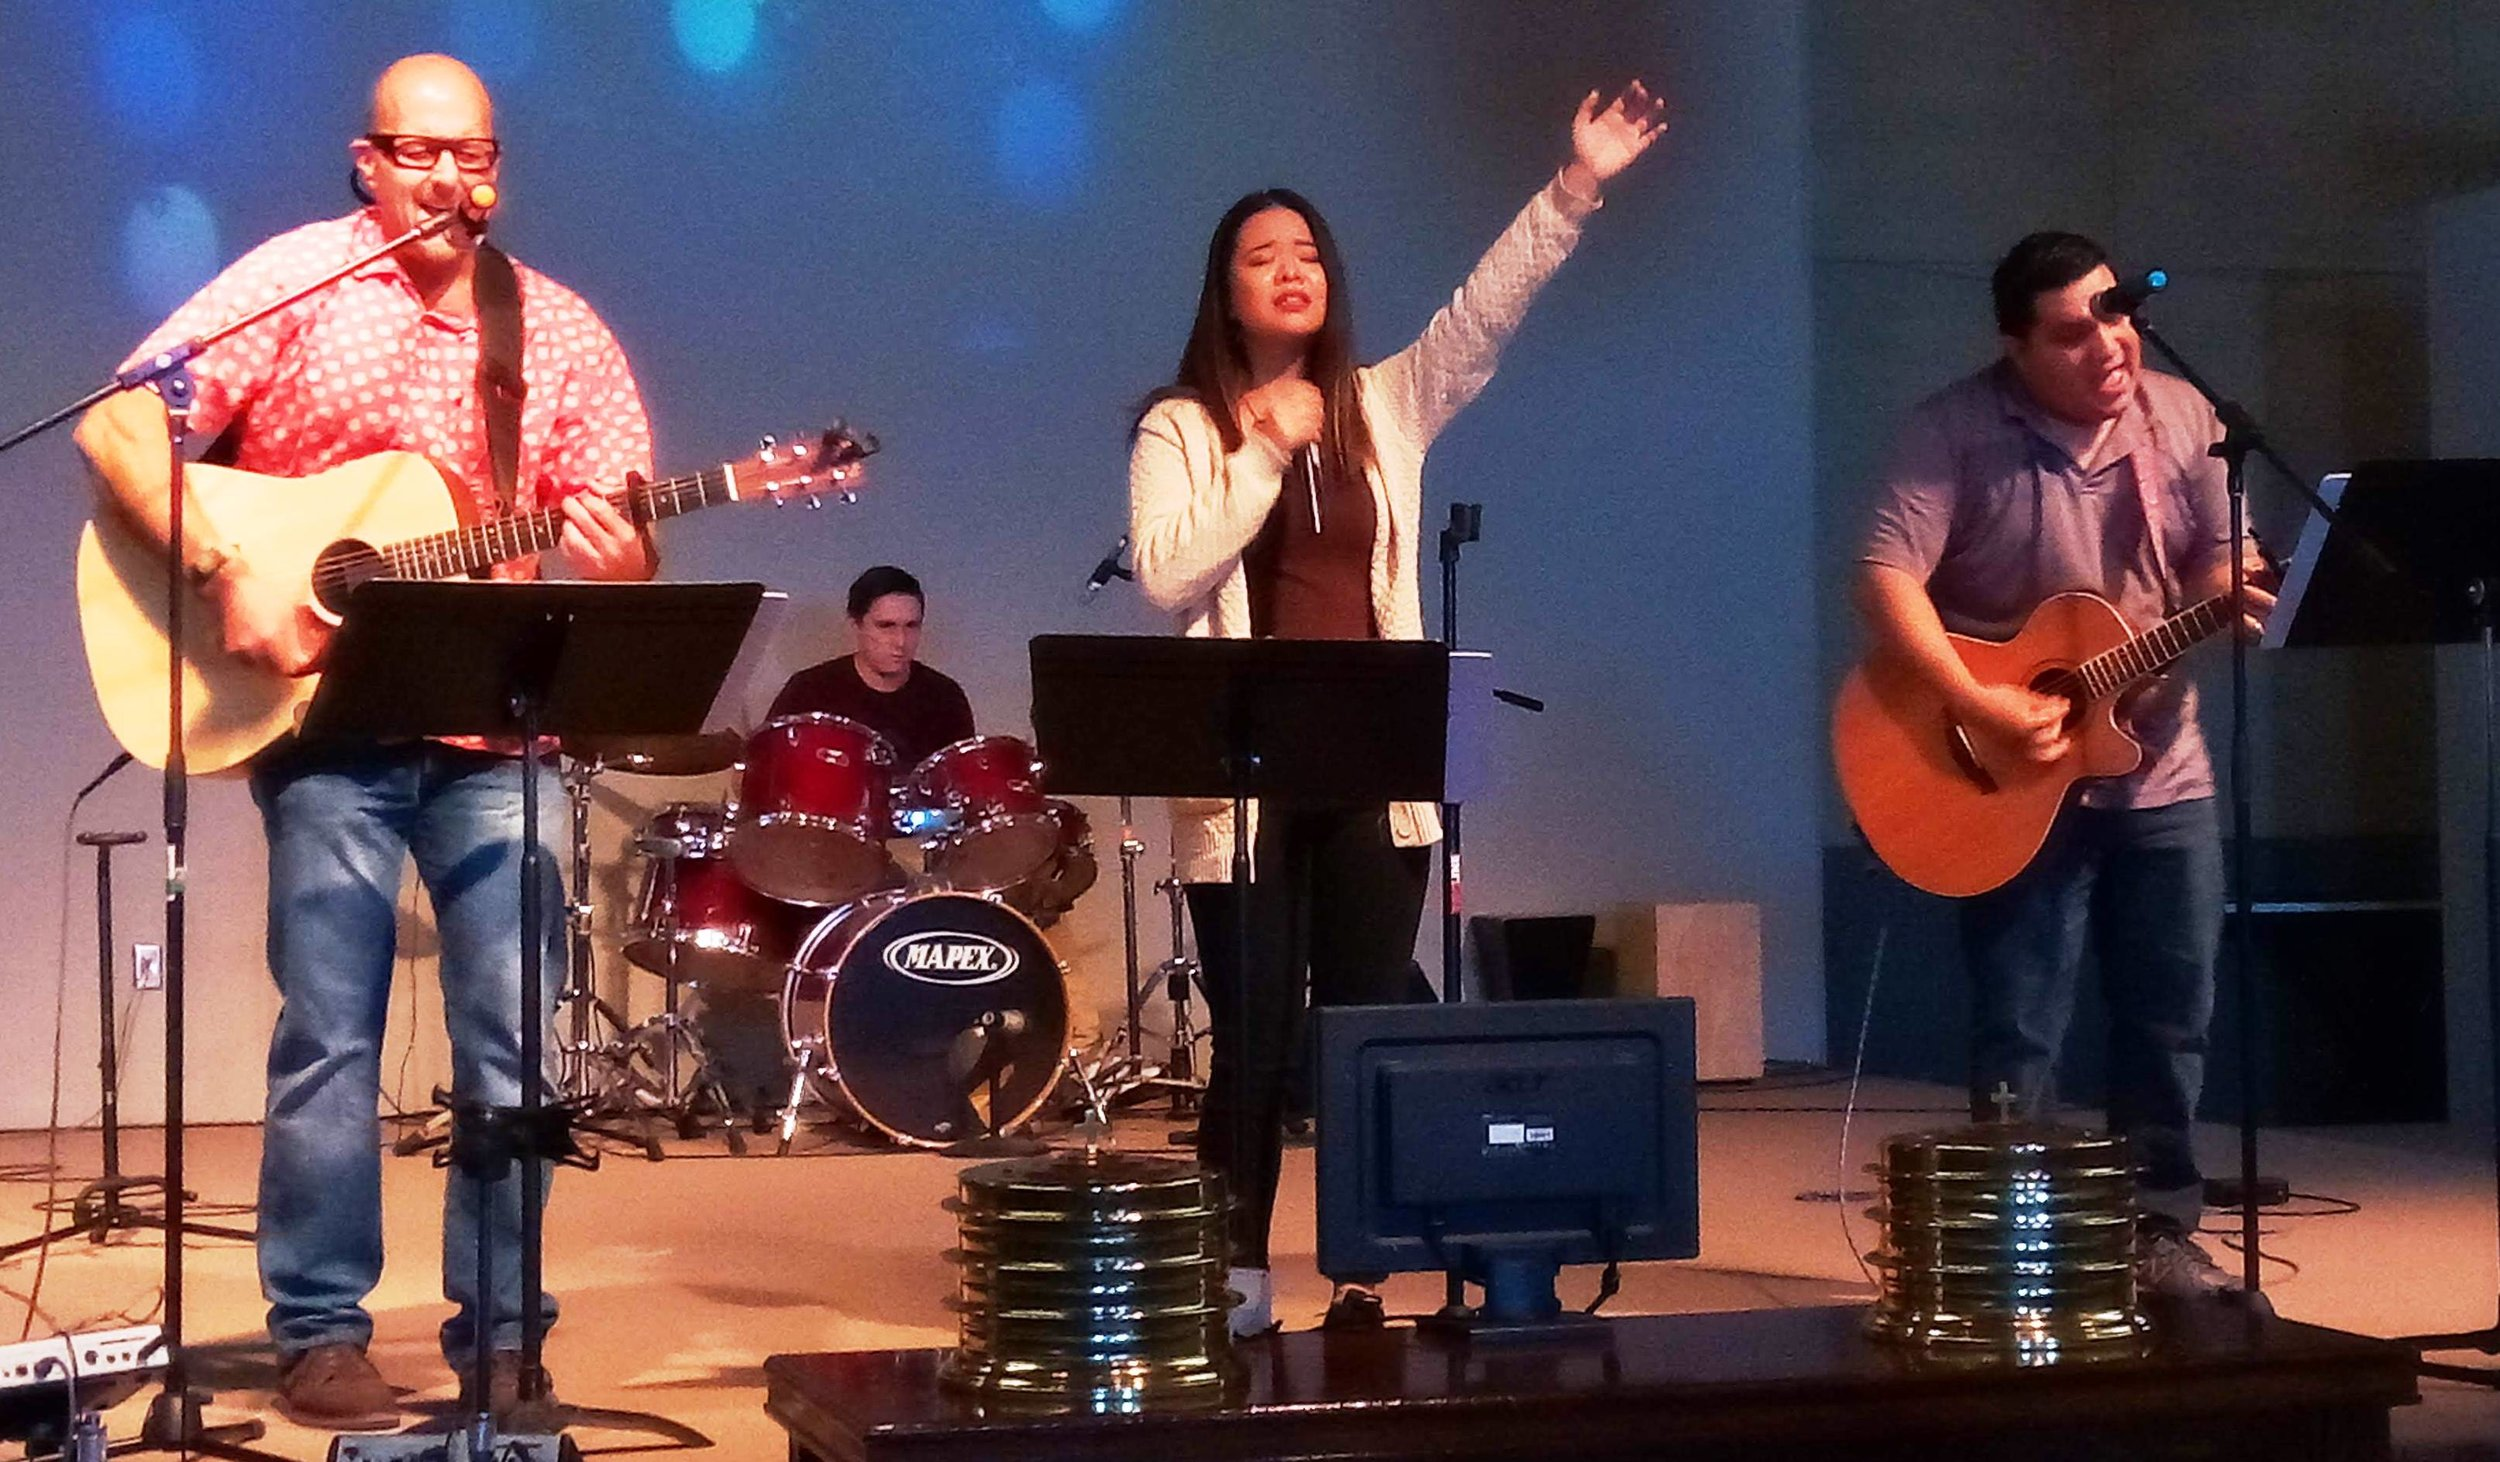 Our Worship Service offers a rich blend of contemporary music, traditional songs and a timeless message. We believe you'll be blessed by what you hear!